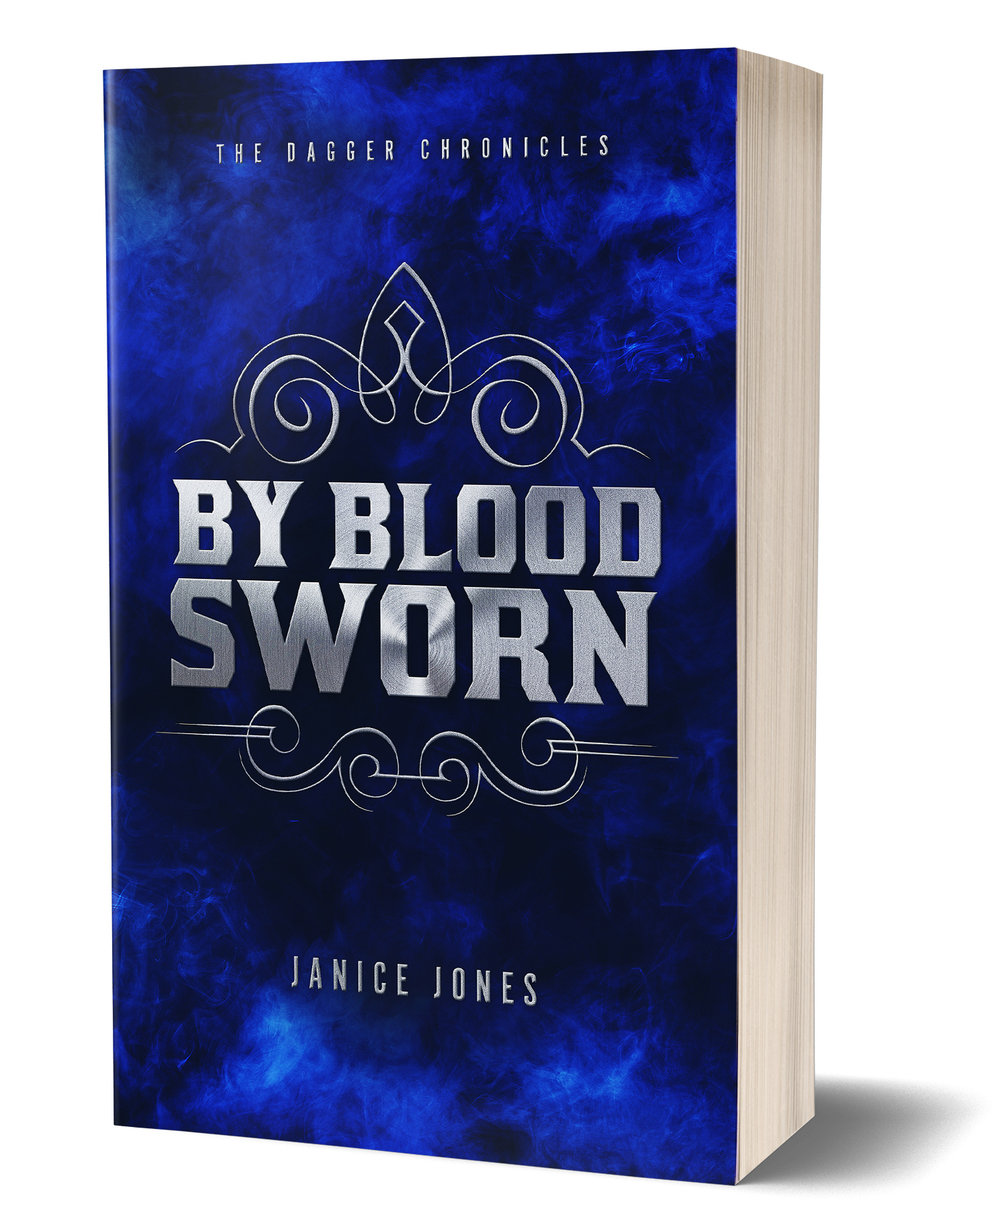 By Blood Sworn book cover, blue background, words written in foreground